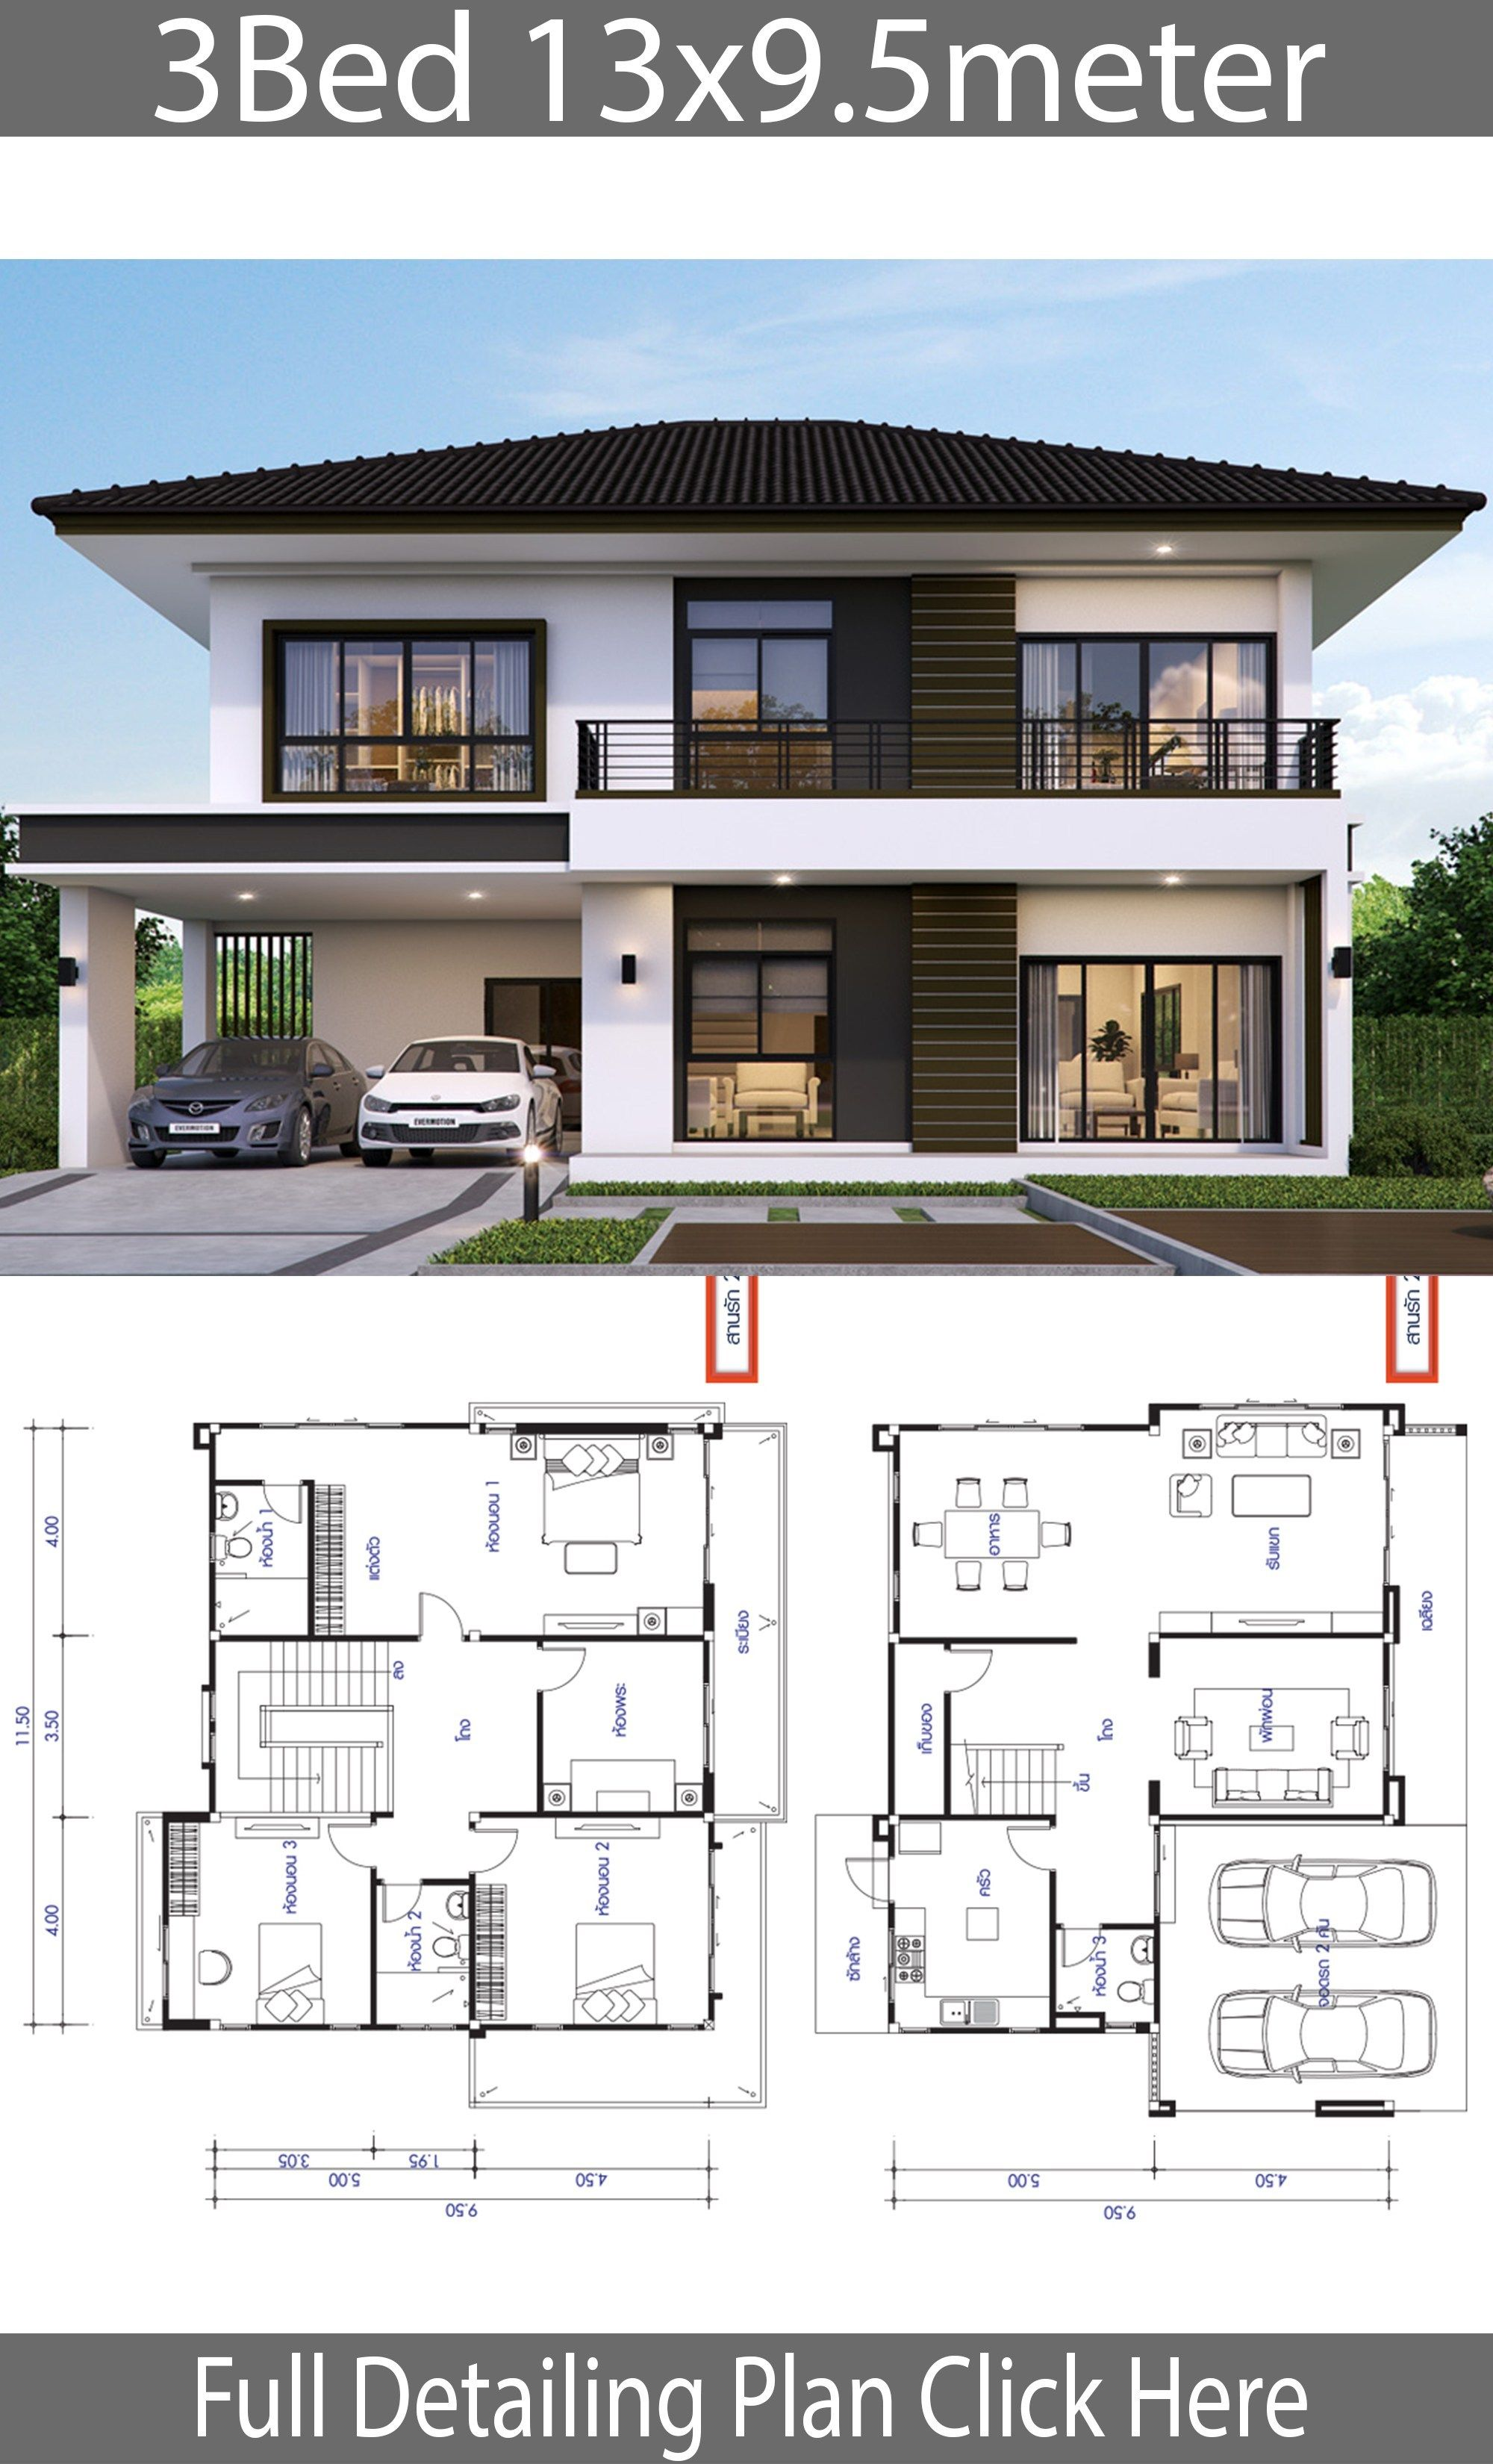 House Design Plan 13x9 5m With 3 Bedrooms Home Design With Plan In 2021 Architectural House Plans House Designs Exterior House Architecture Design